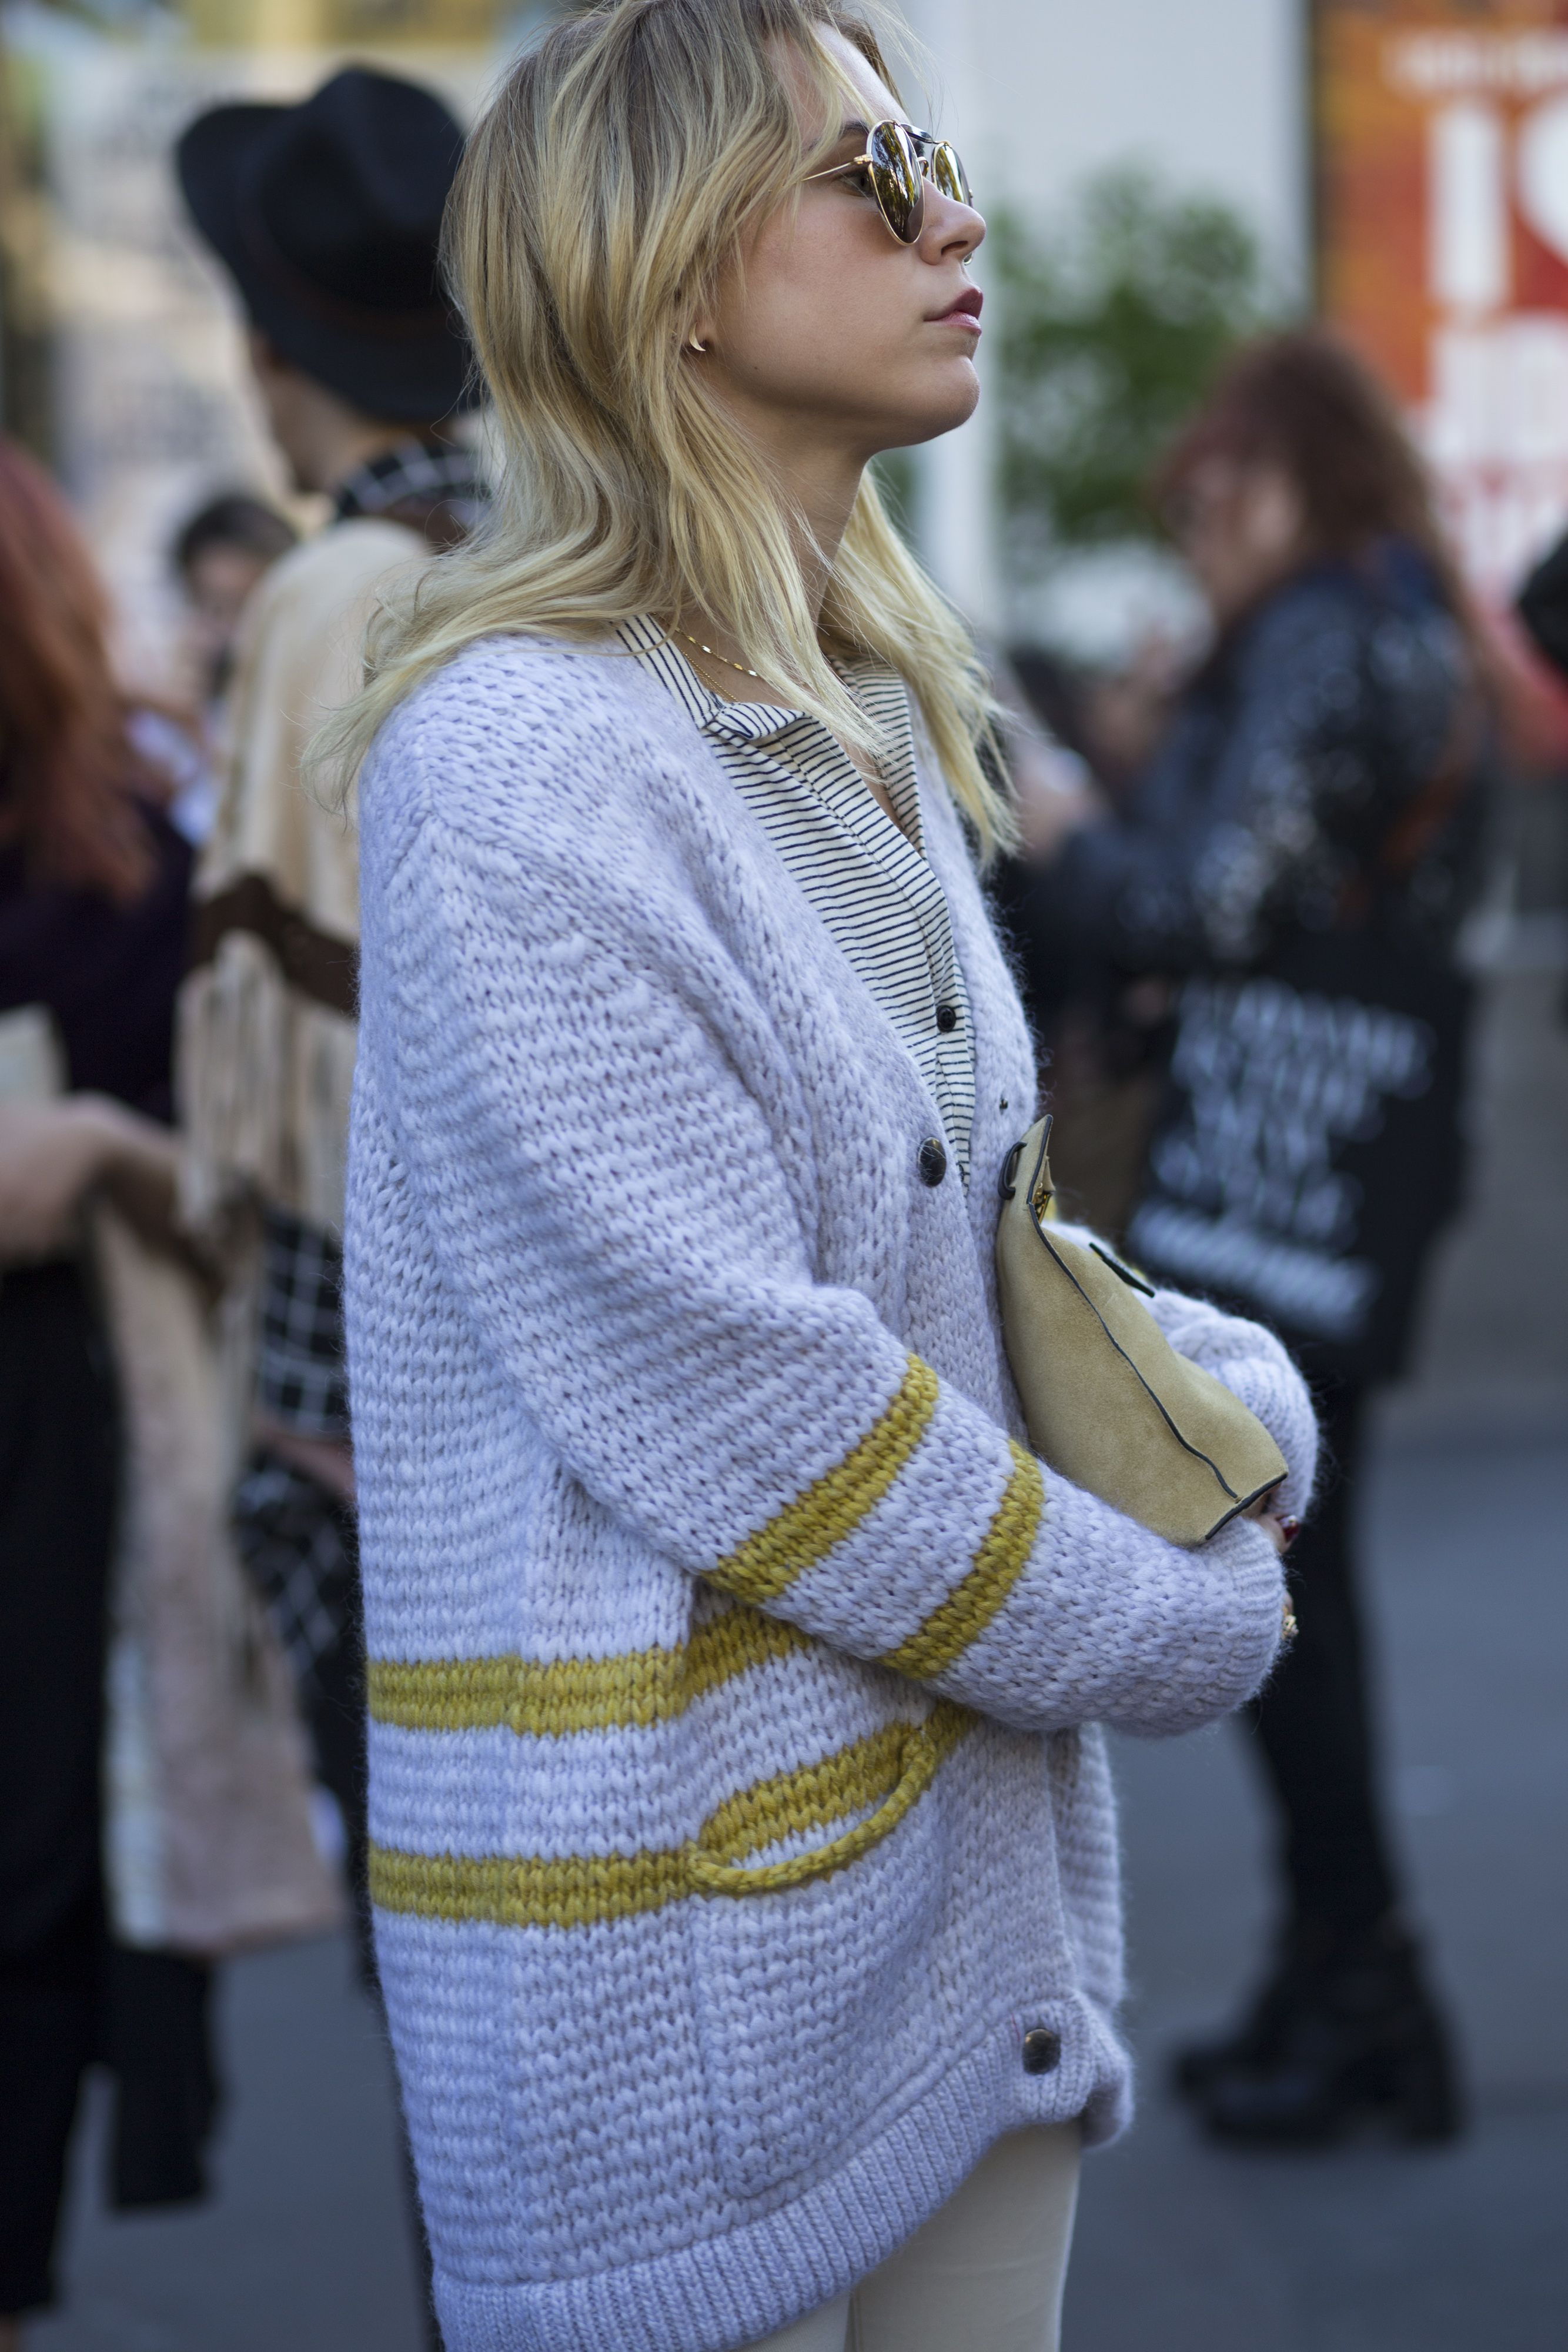 #SS16 #PFW Street Style - More on The Hub